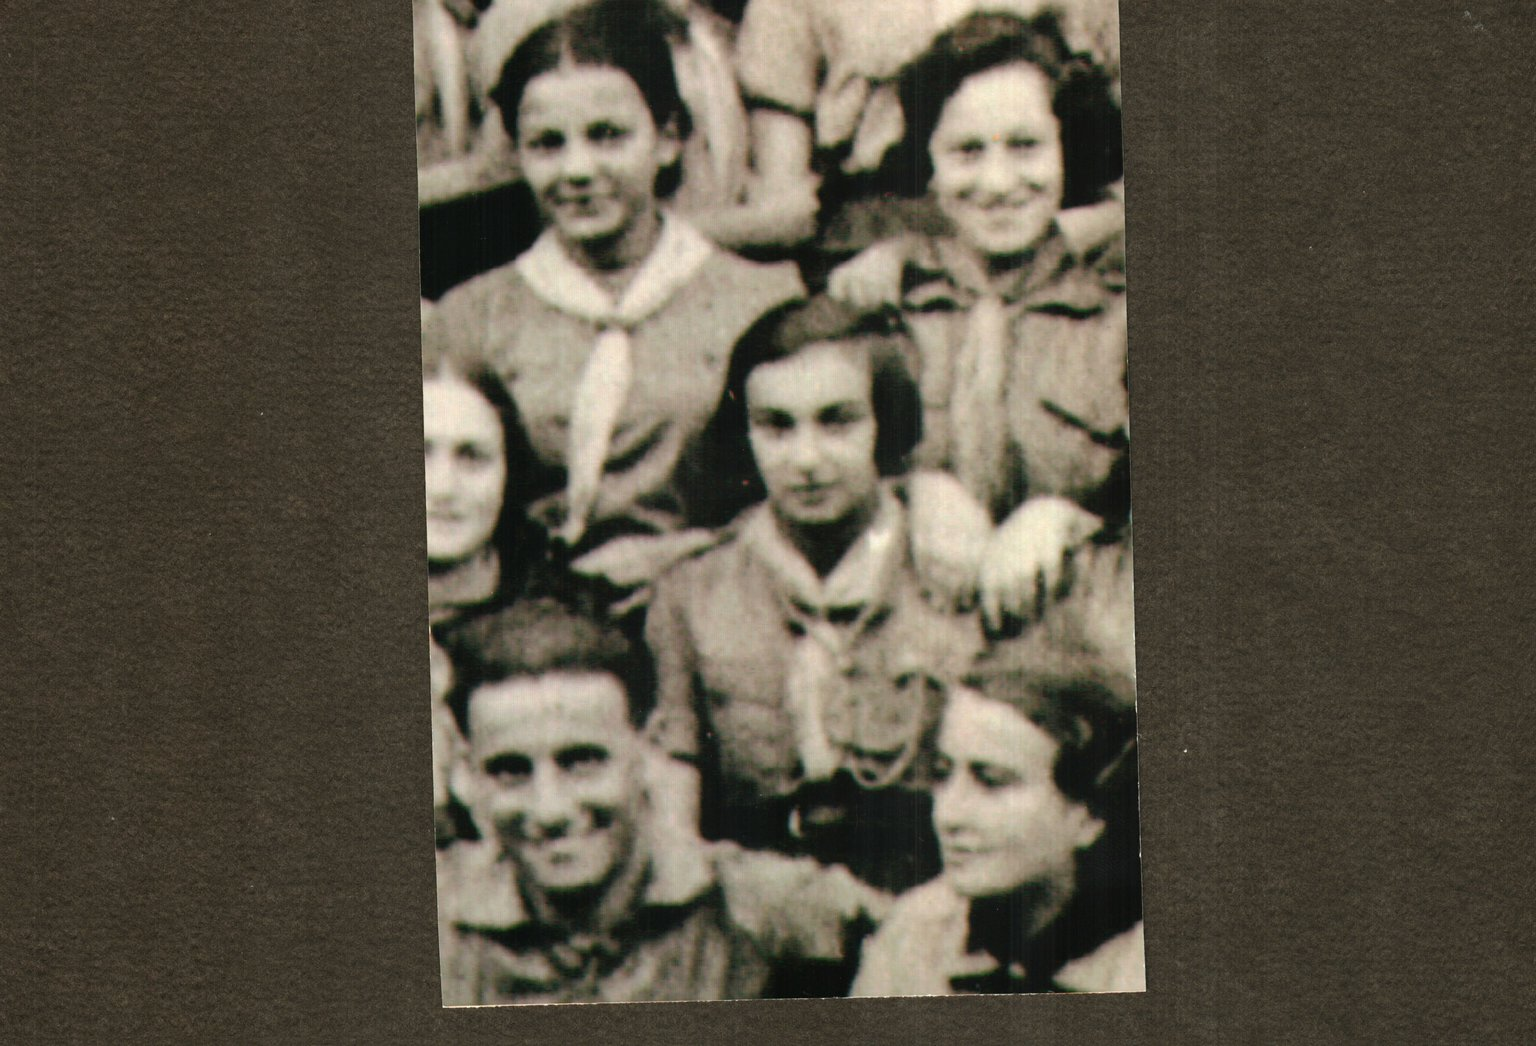 Elsa Binder (centre) from Poland kept a diary in the Jewish Stanislovas ghetto.